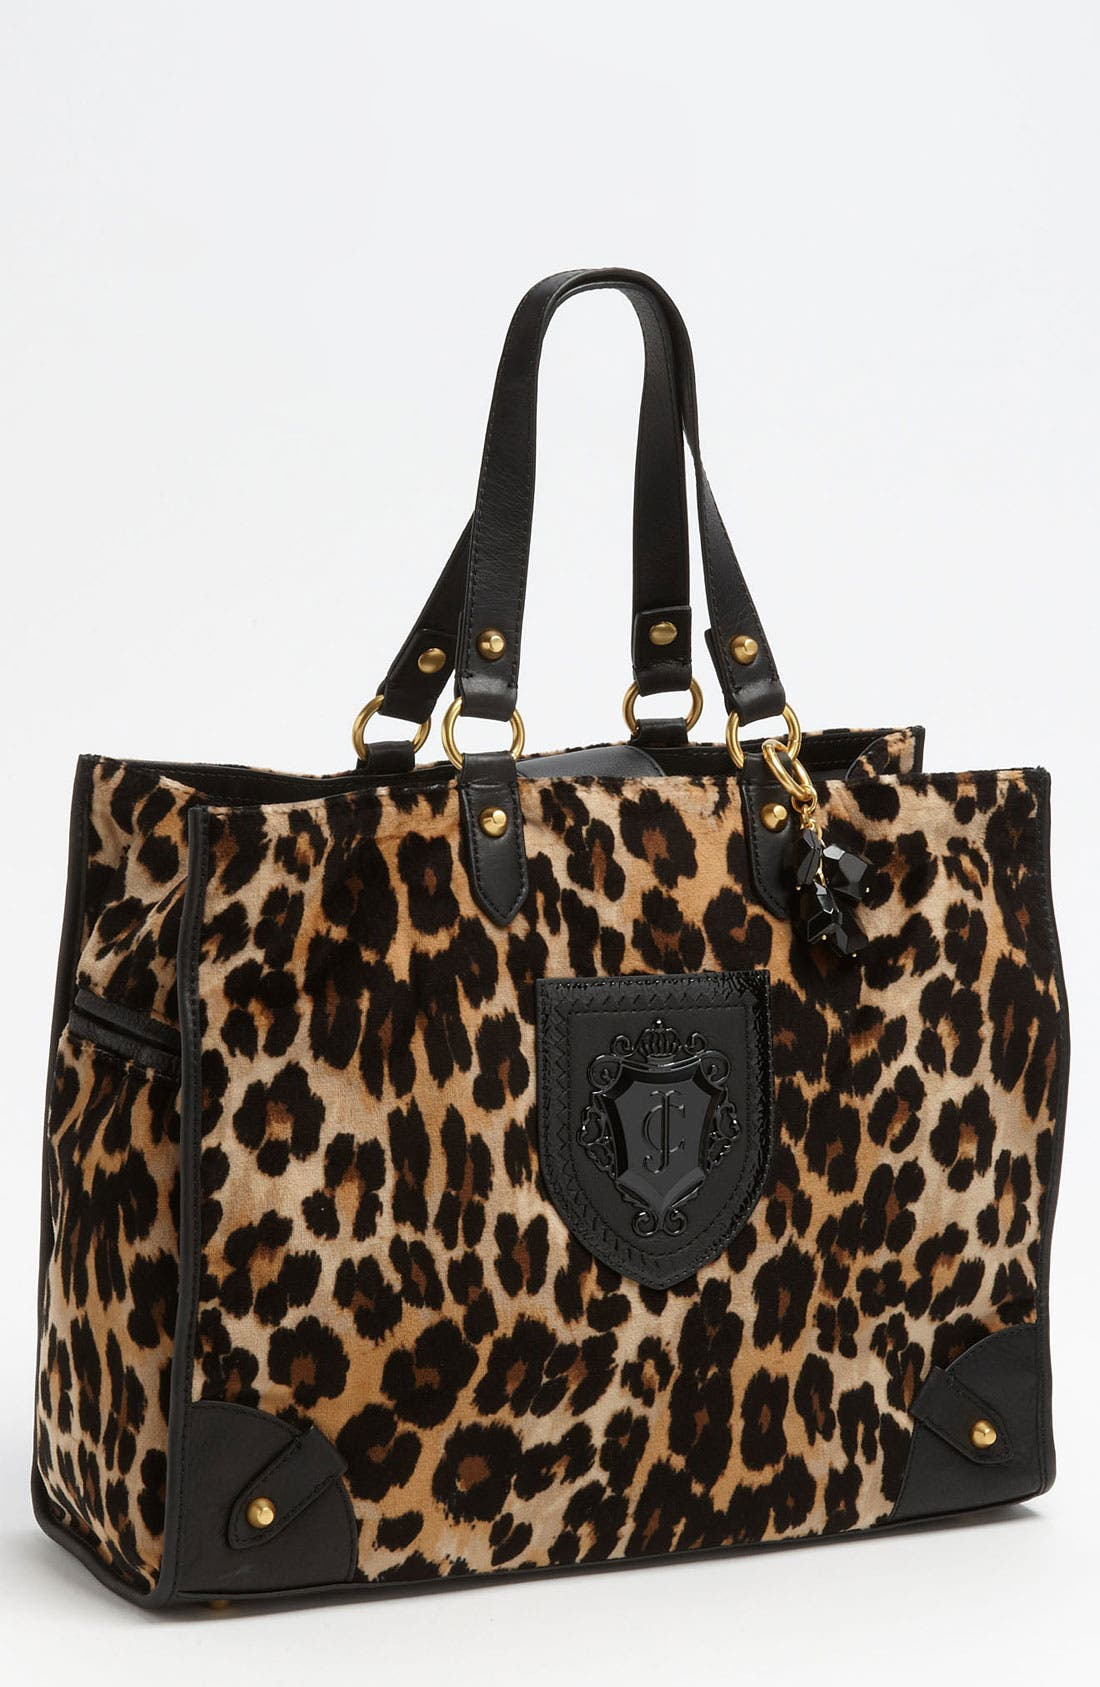 Alternate Image 1 Selected - Juicy Couture 'Nicola - Wild Things' Tote